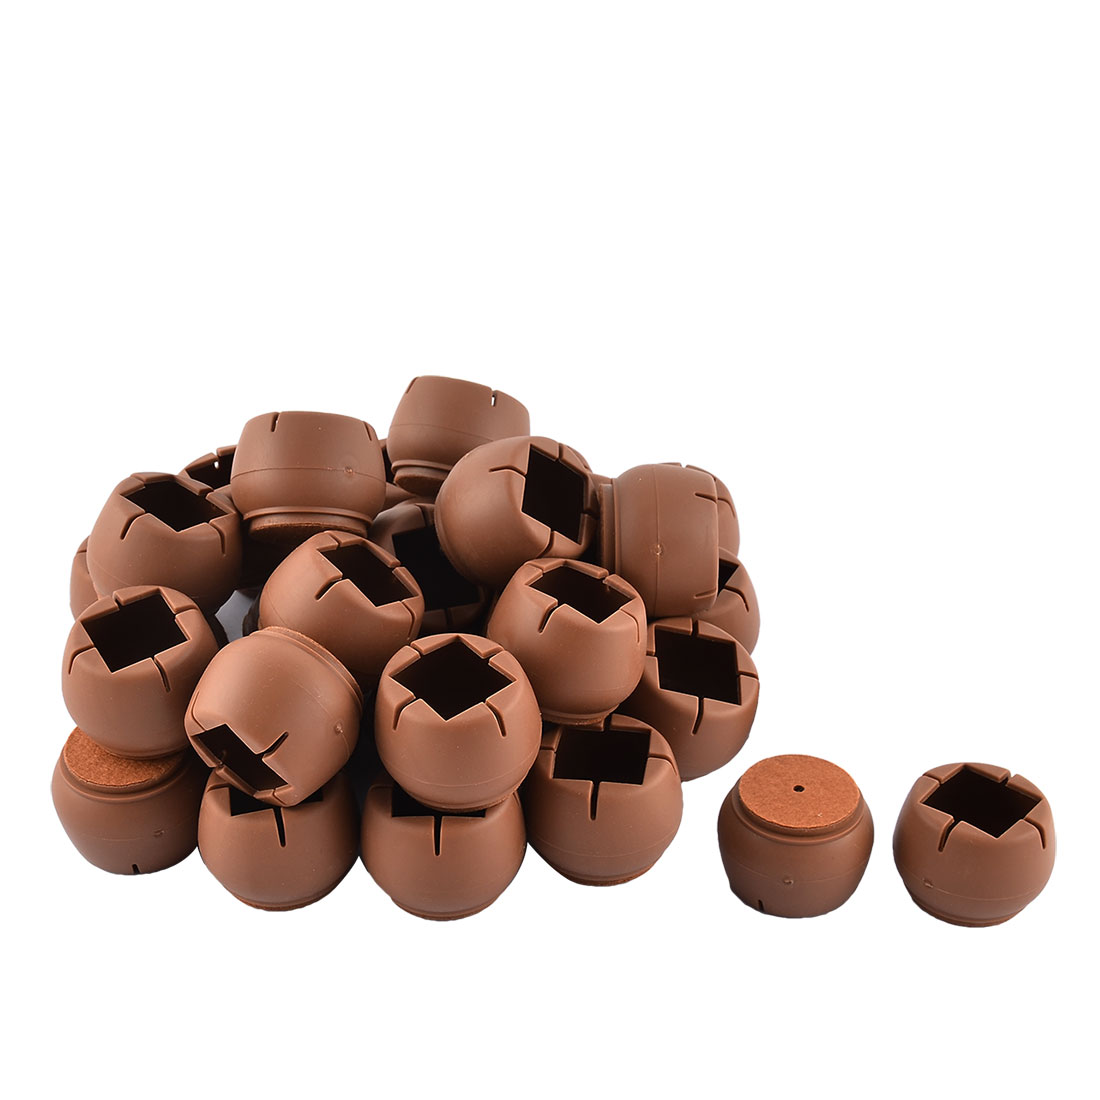 Home Silicone Round Bottom Furniture Floor Protector Table Desk Leg Pad Cap Cover Tip Coffee Color 4.6 x 3.5cm 32pcs